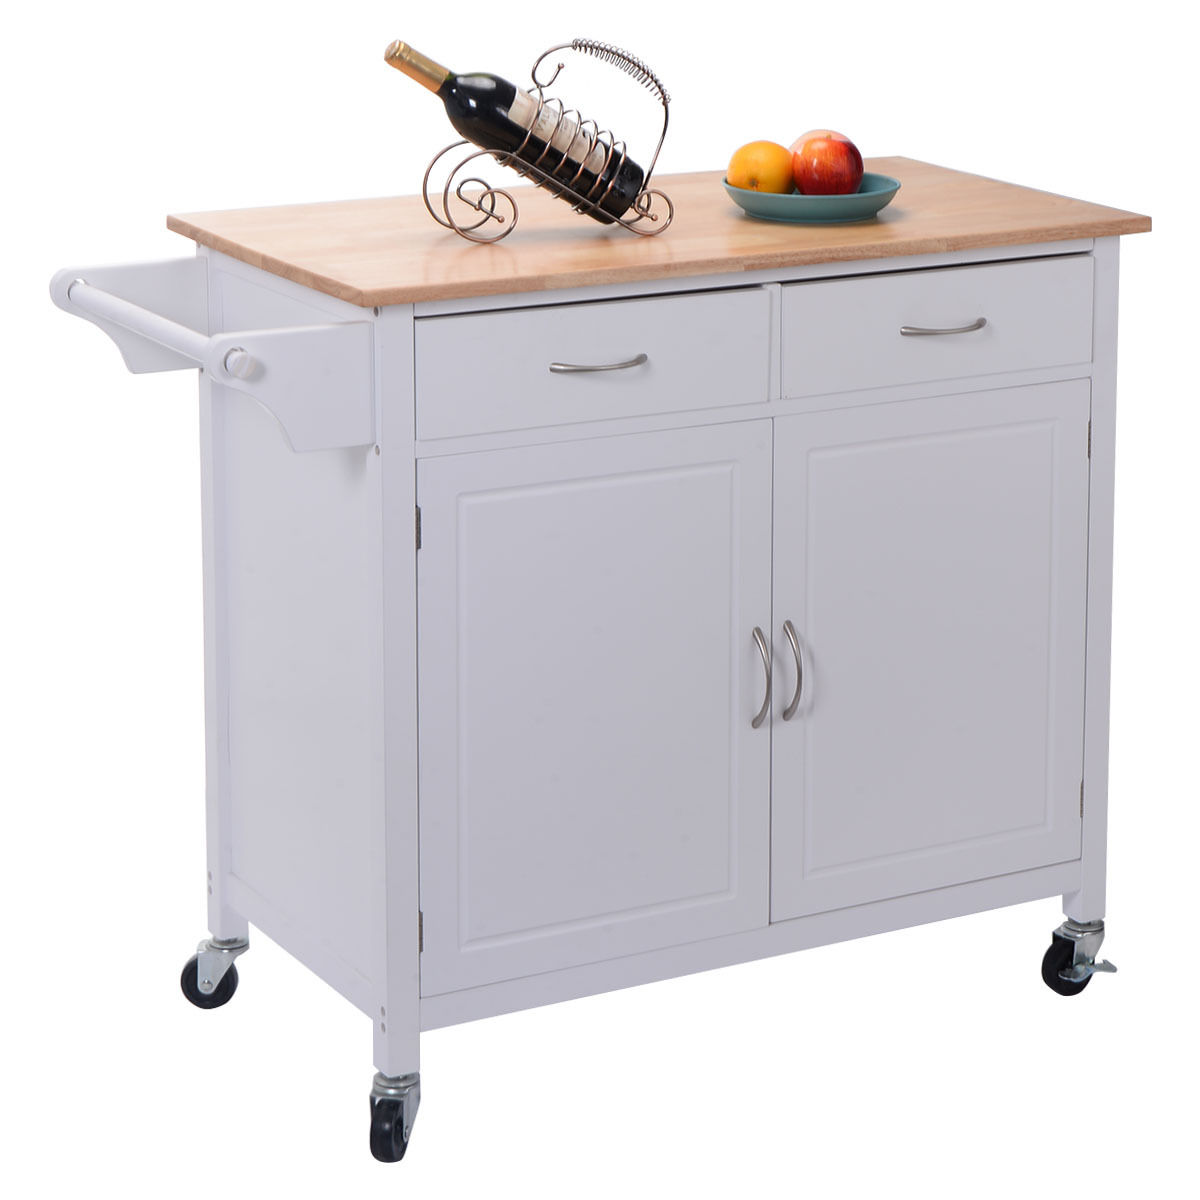 costway rolling kitchen cart island wood top storage